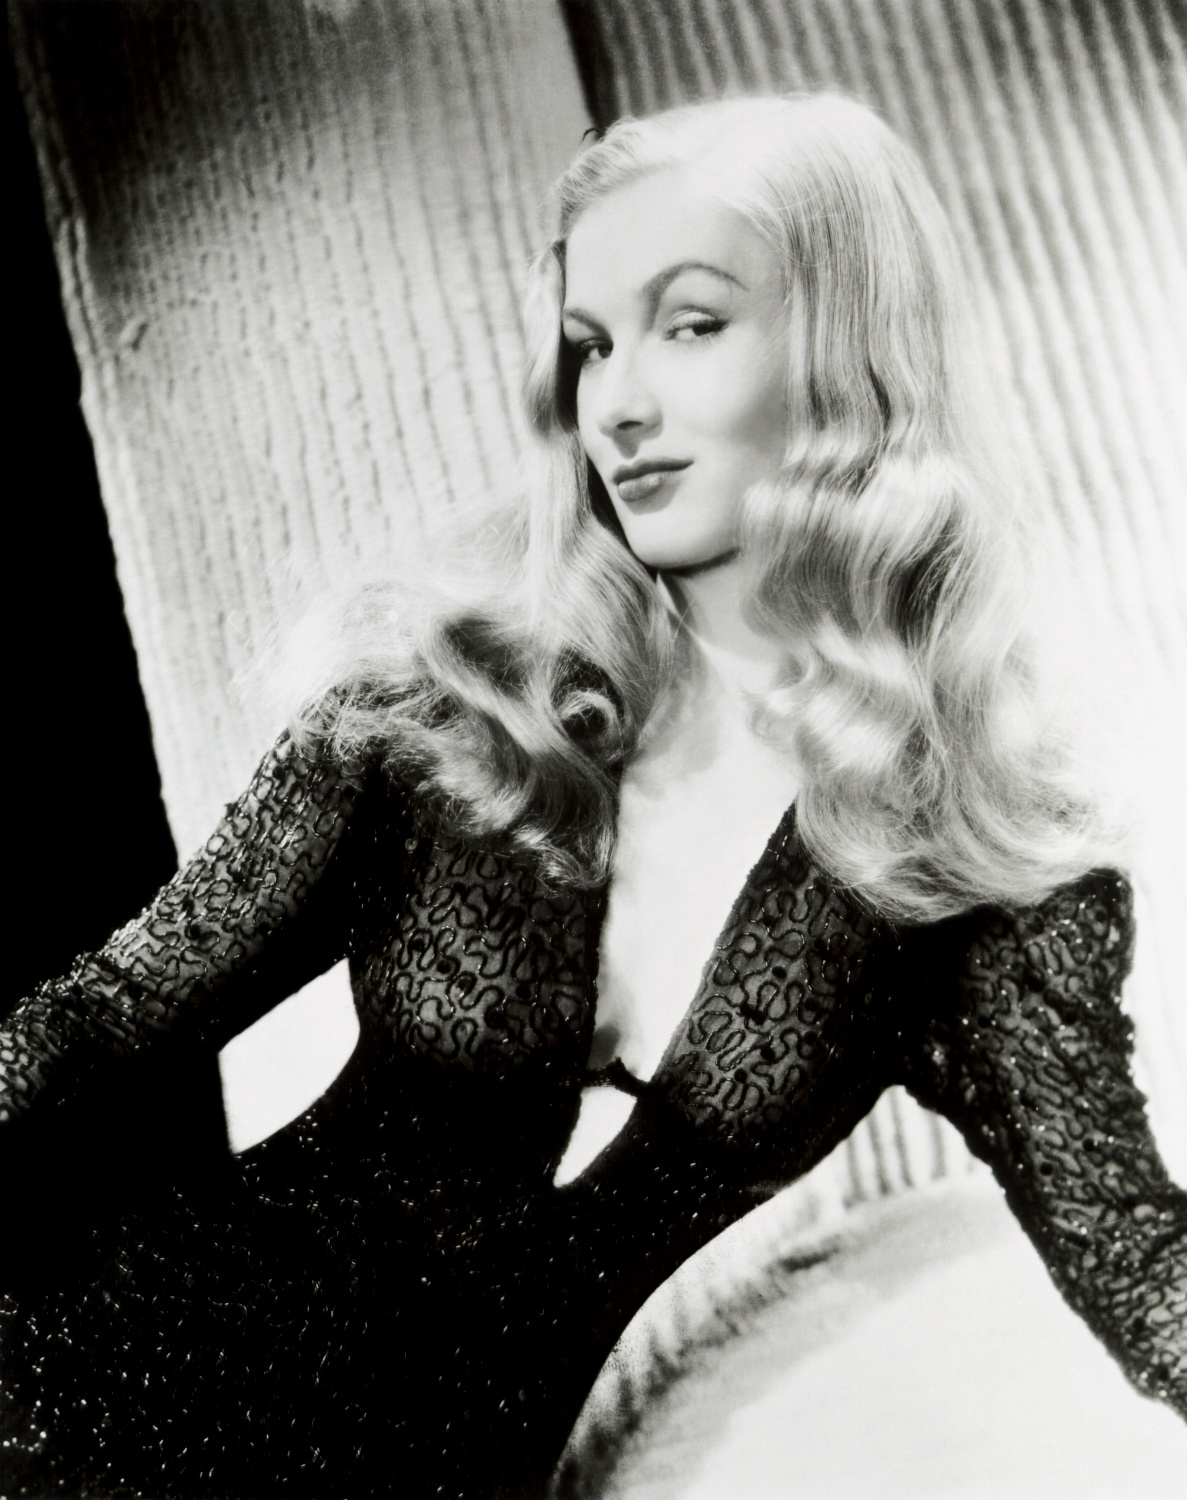 http://michaelmay.us/08blog/10/1027_veronicalake.jpg